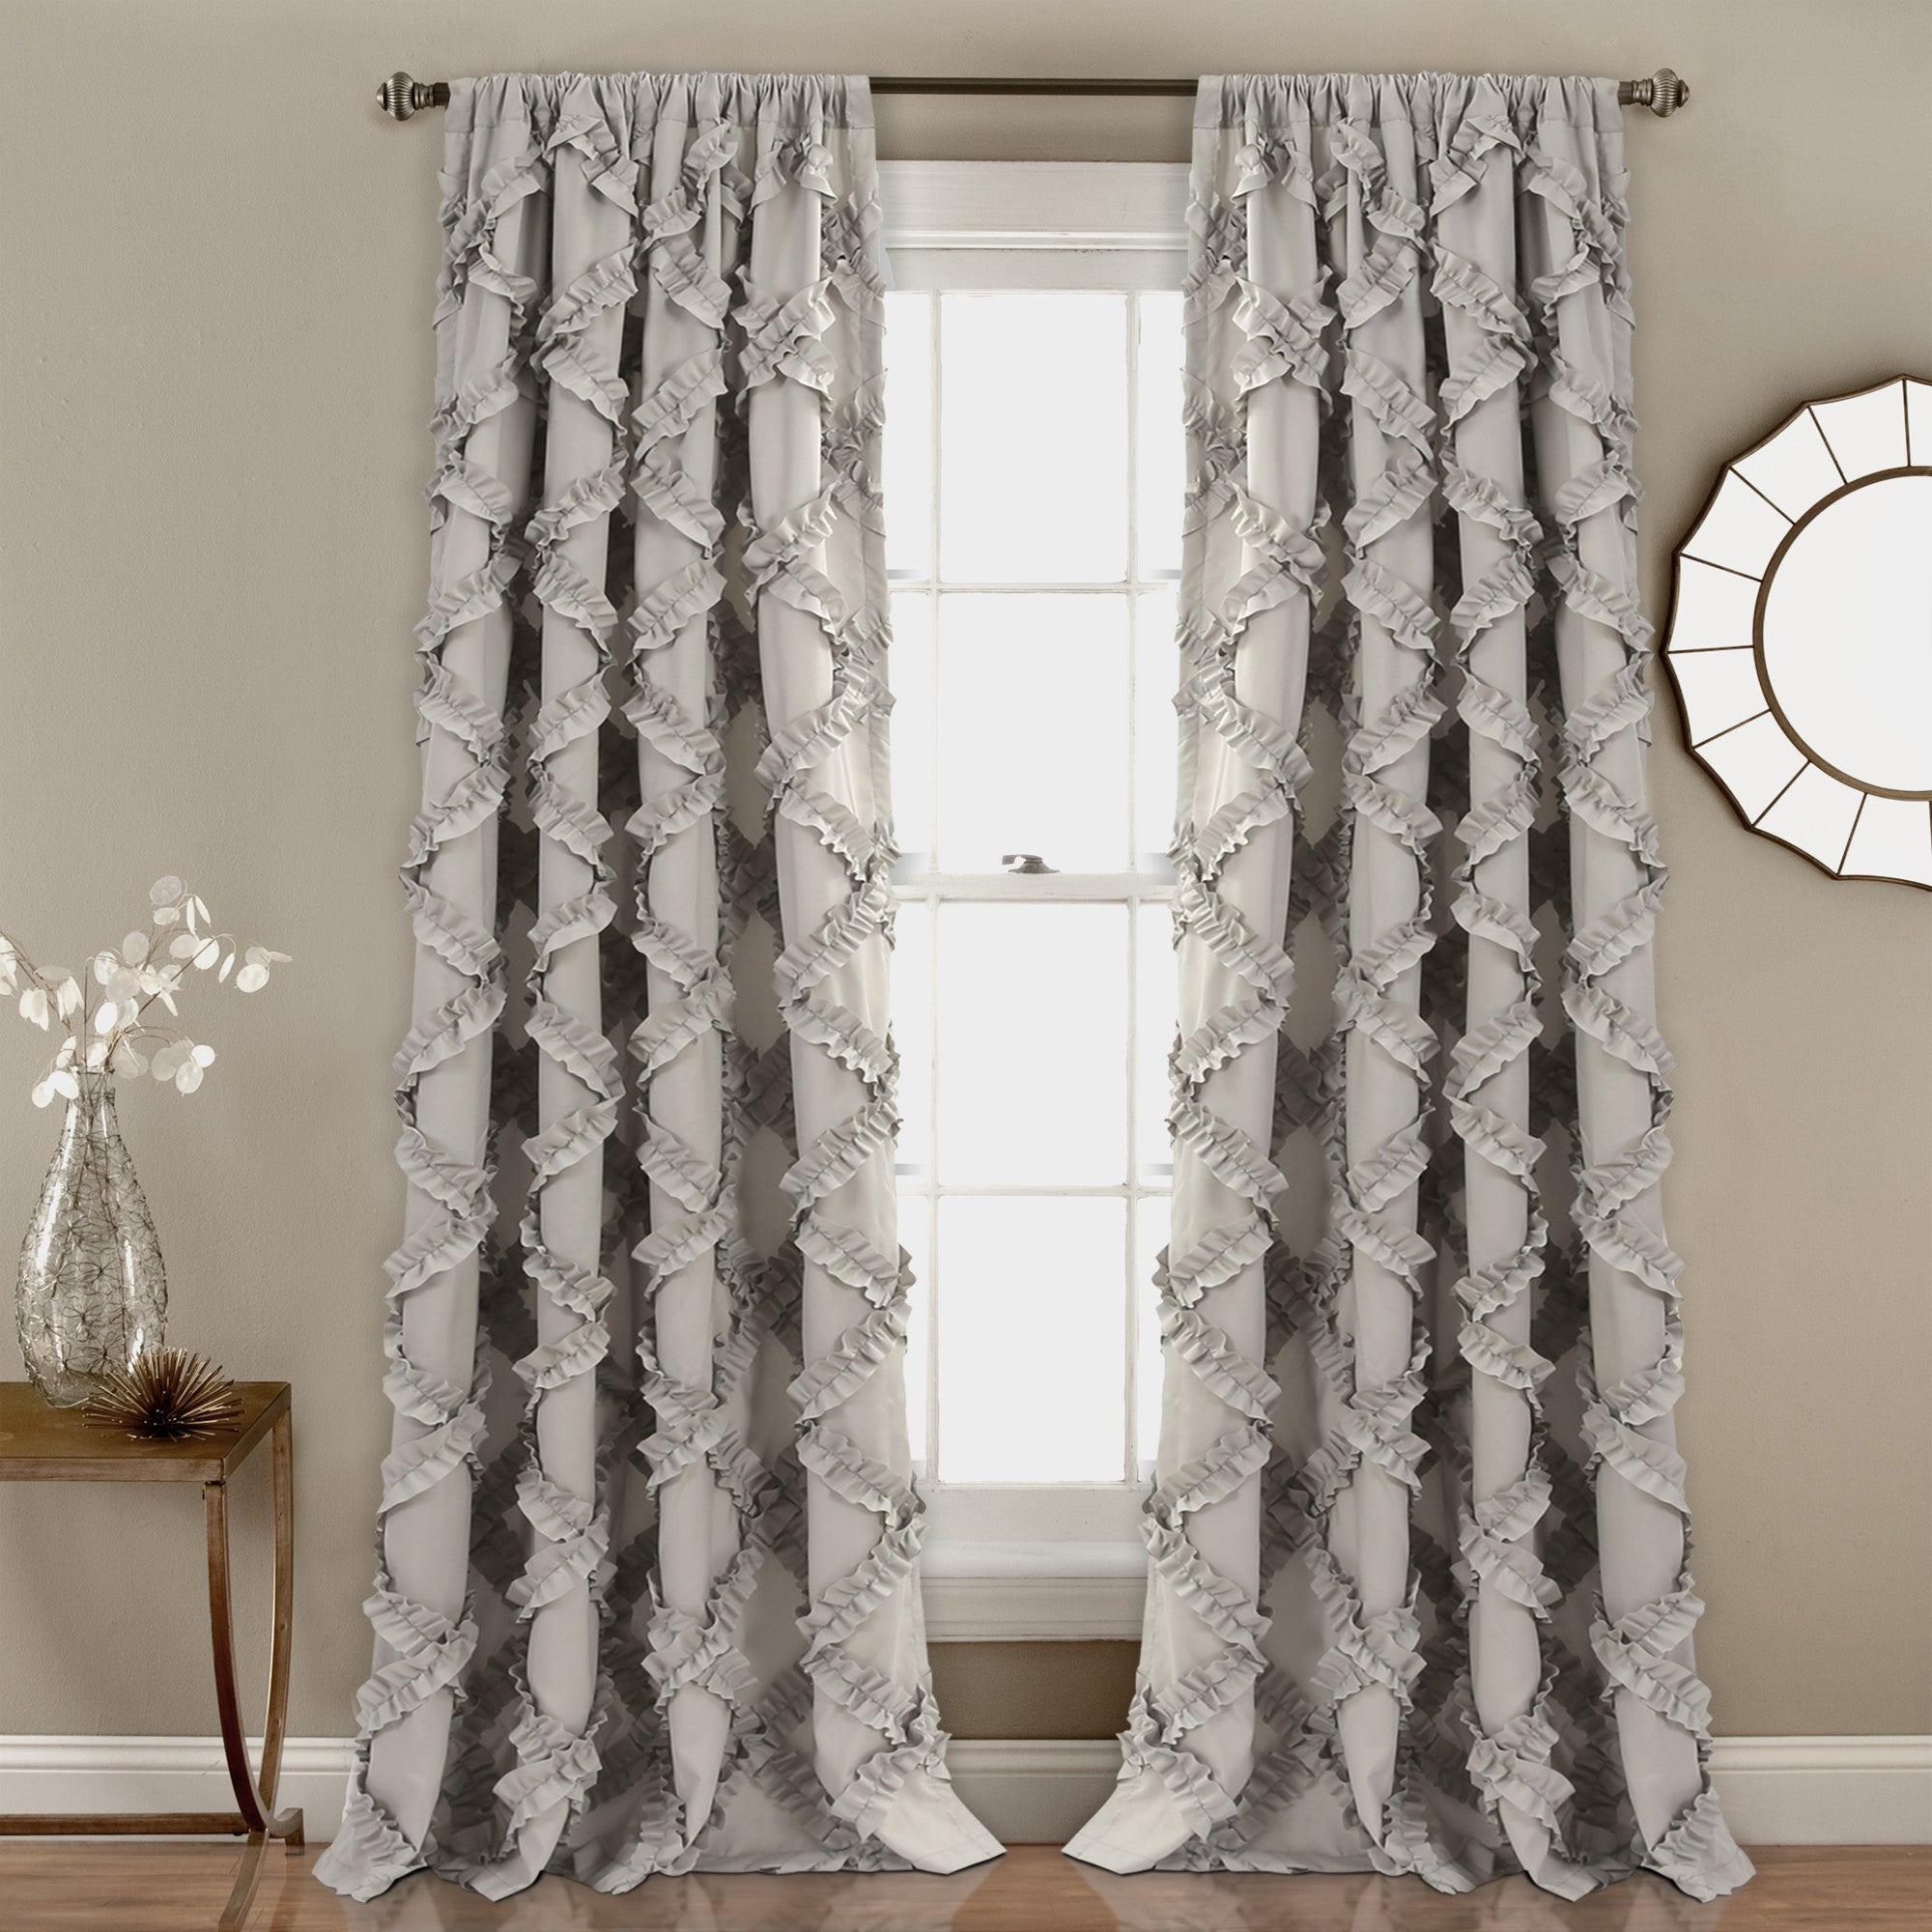 curtains ideas curtain shower about looking best new of vintage clearance shabby